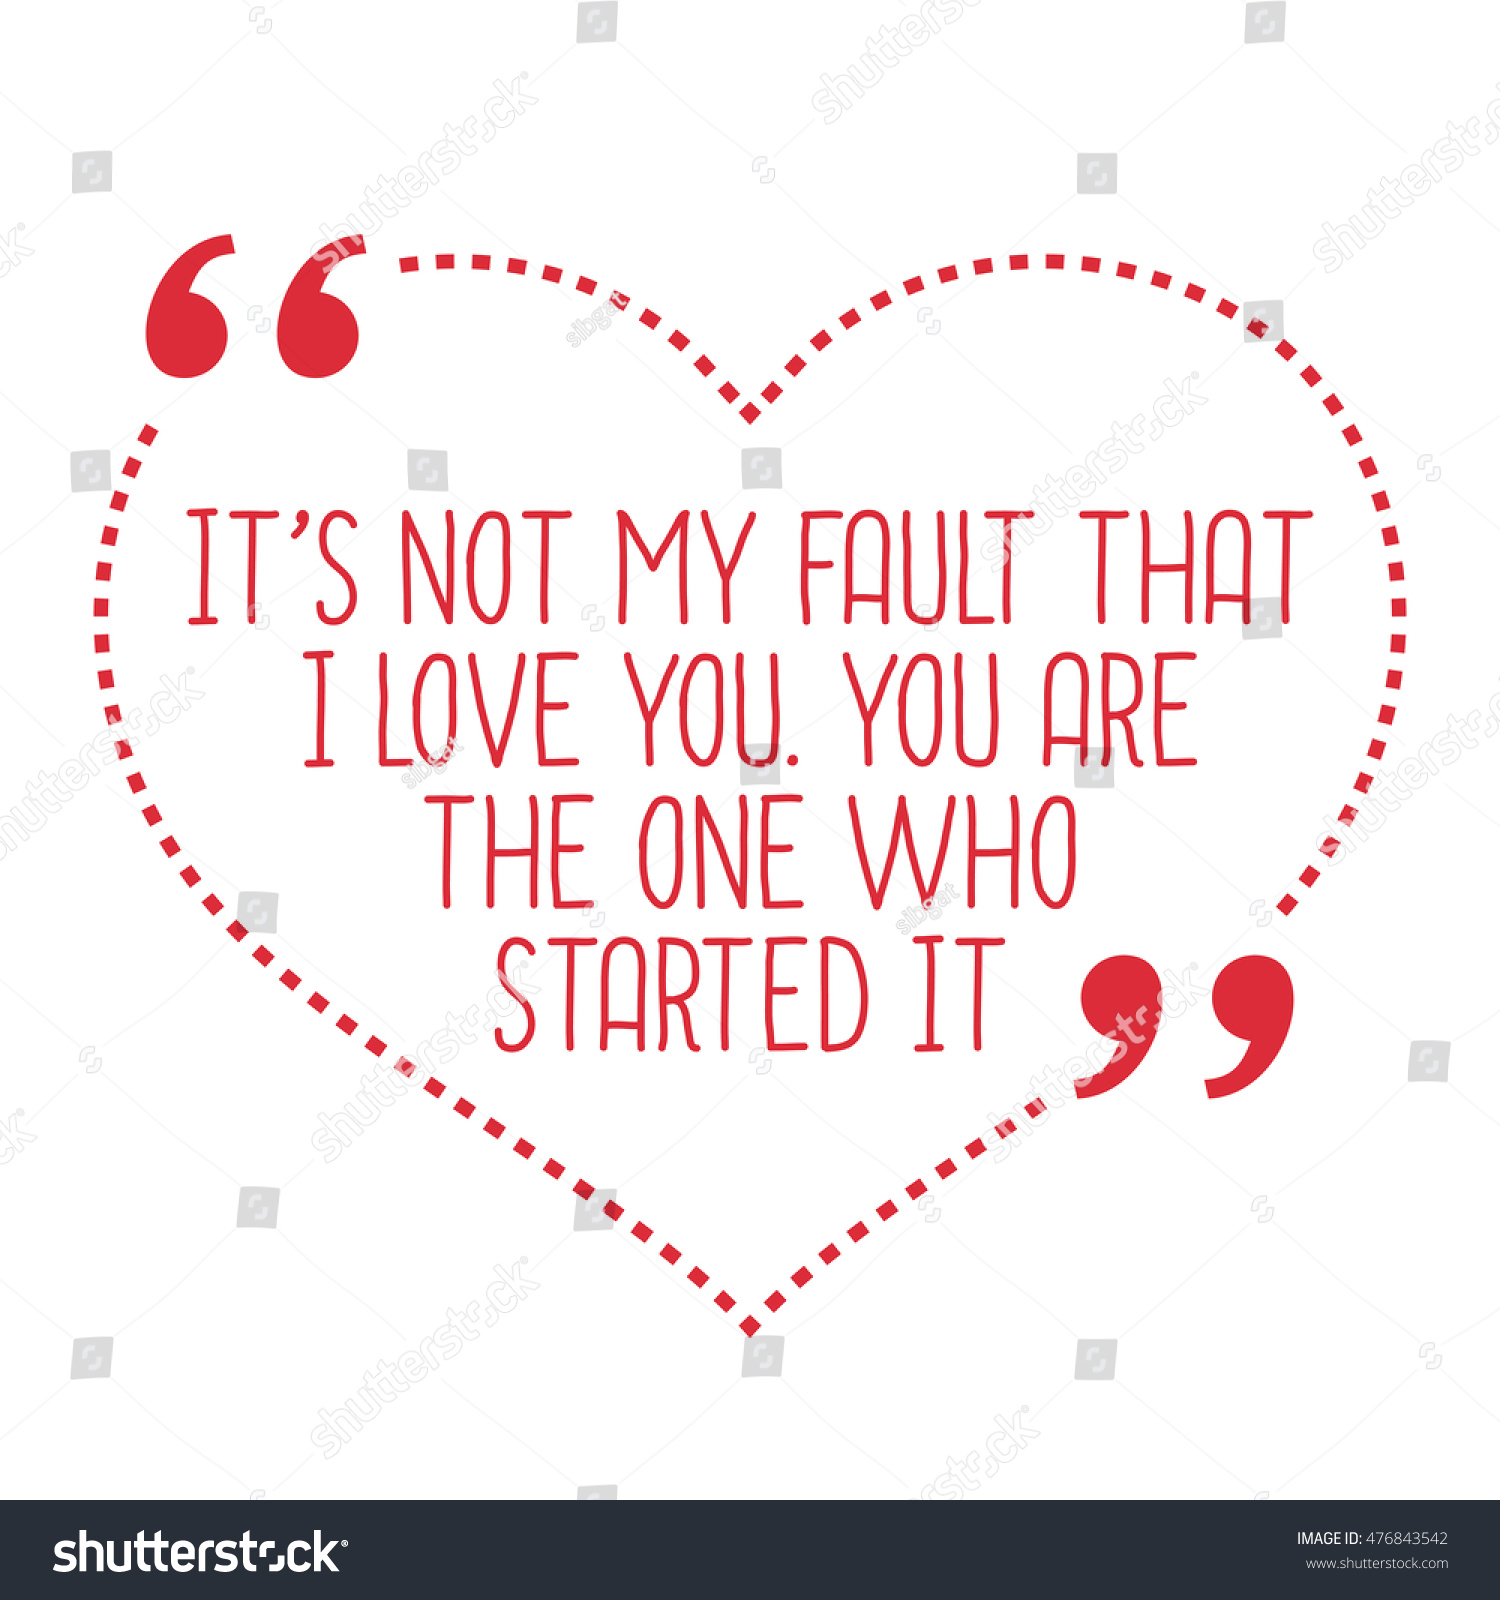 Funny love quote It s not my fault that I love you You are the